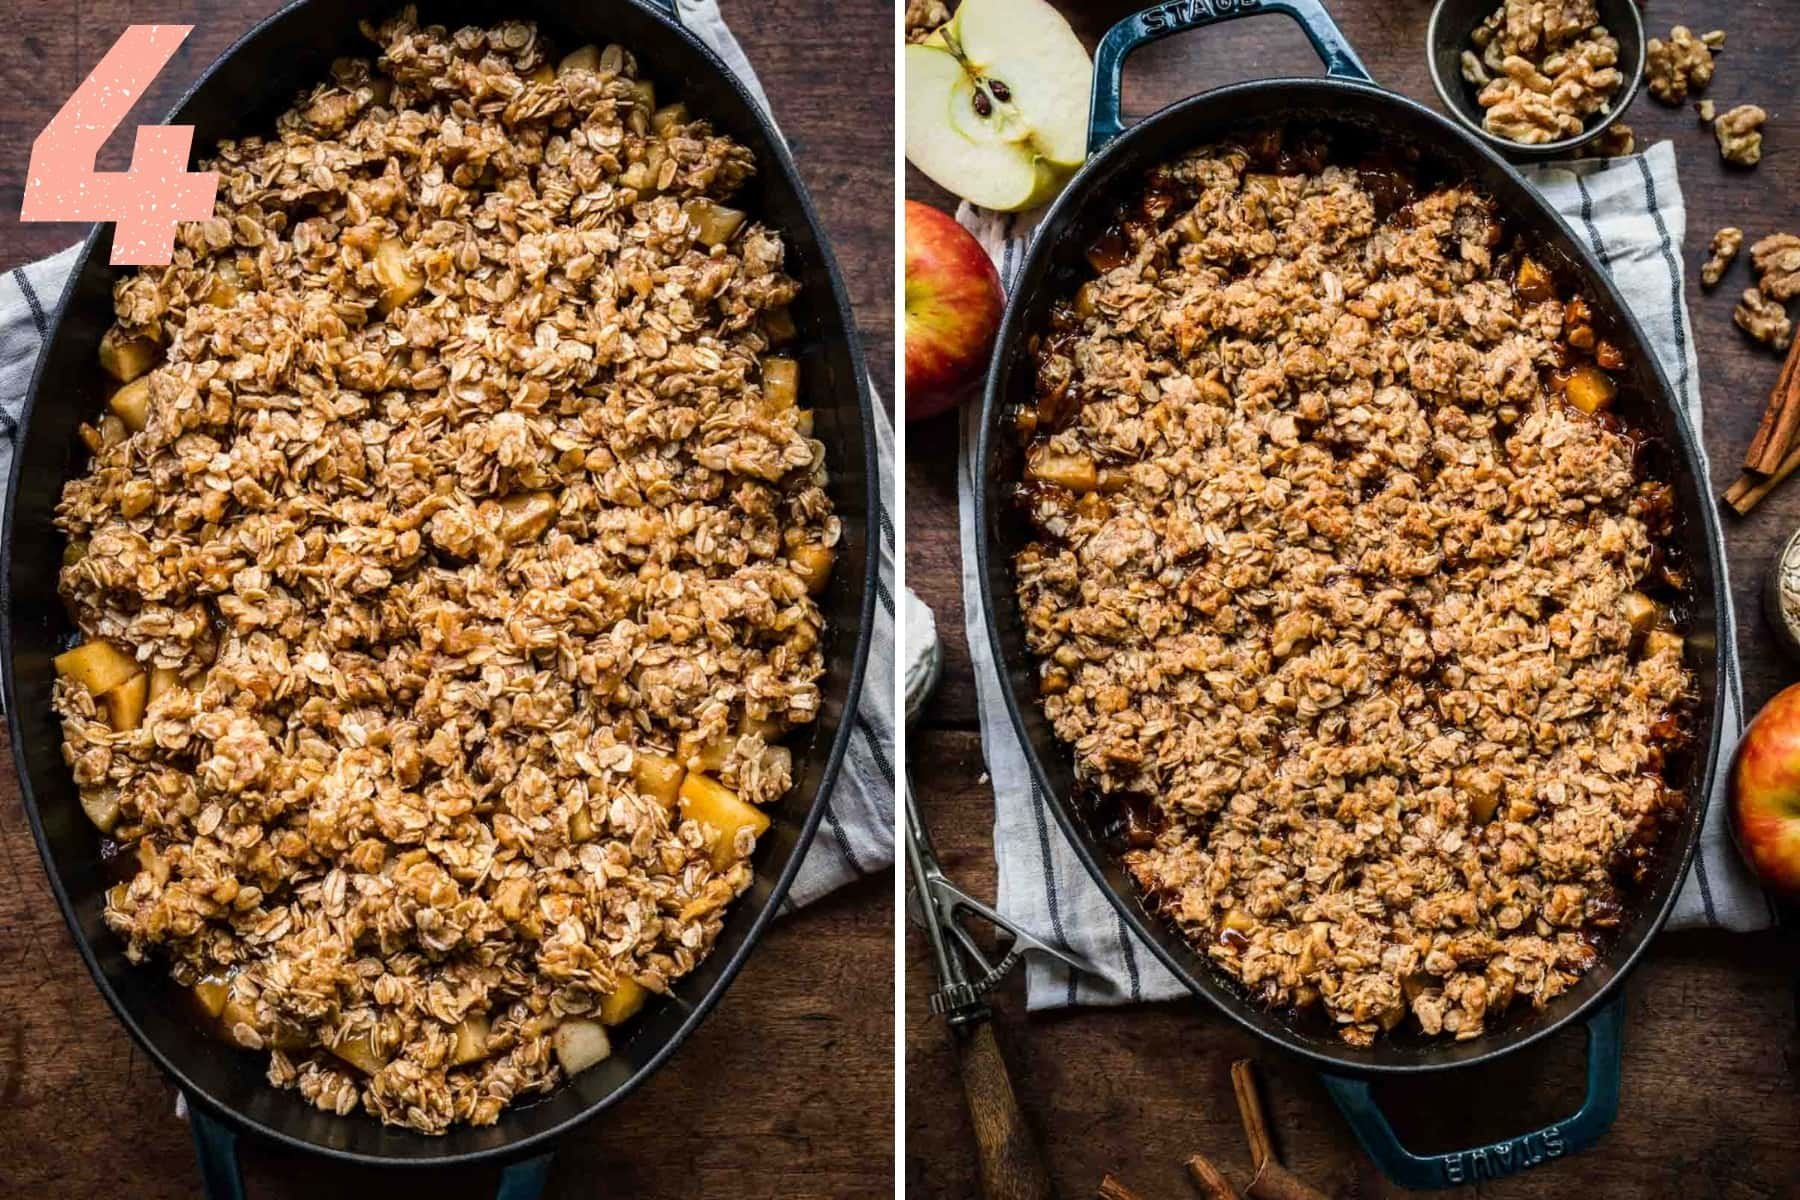 before and after baking gluten free apple crisp in skillet.